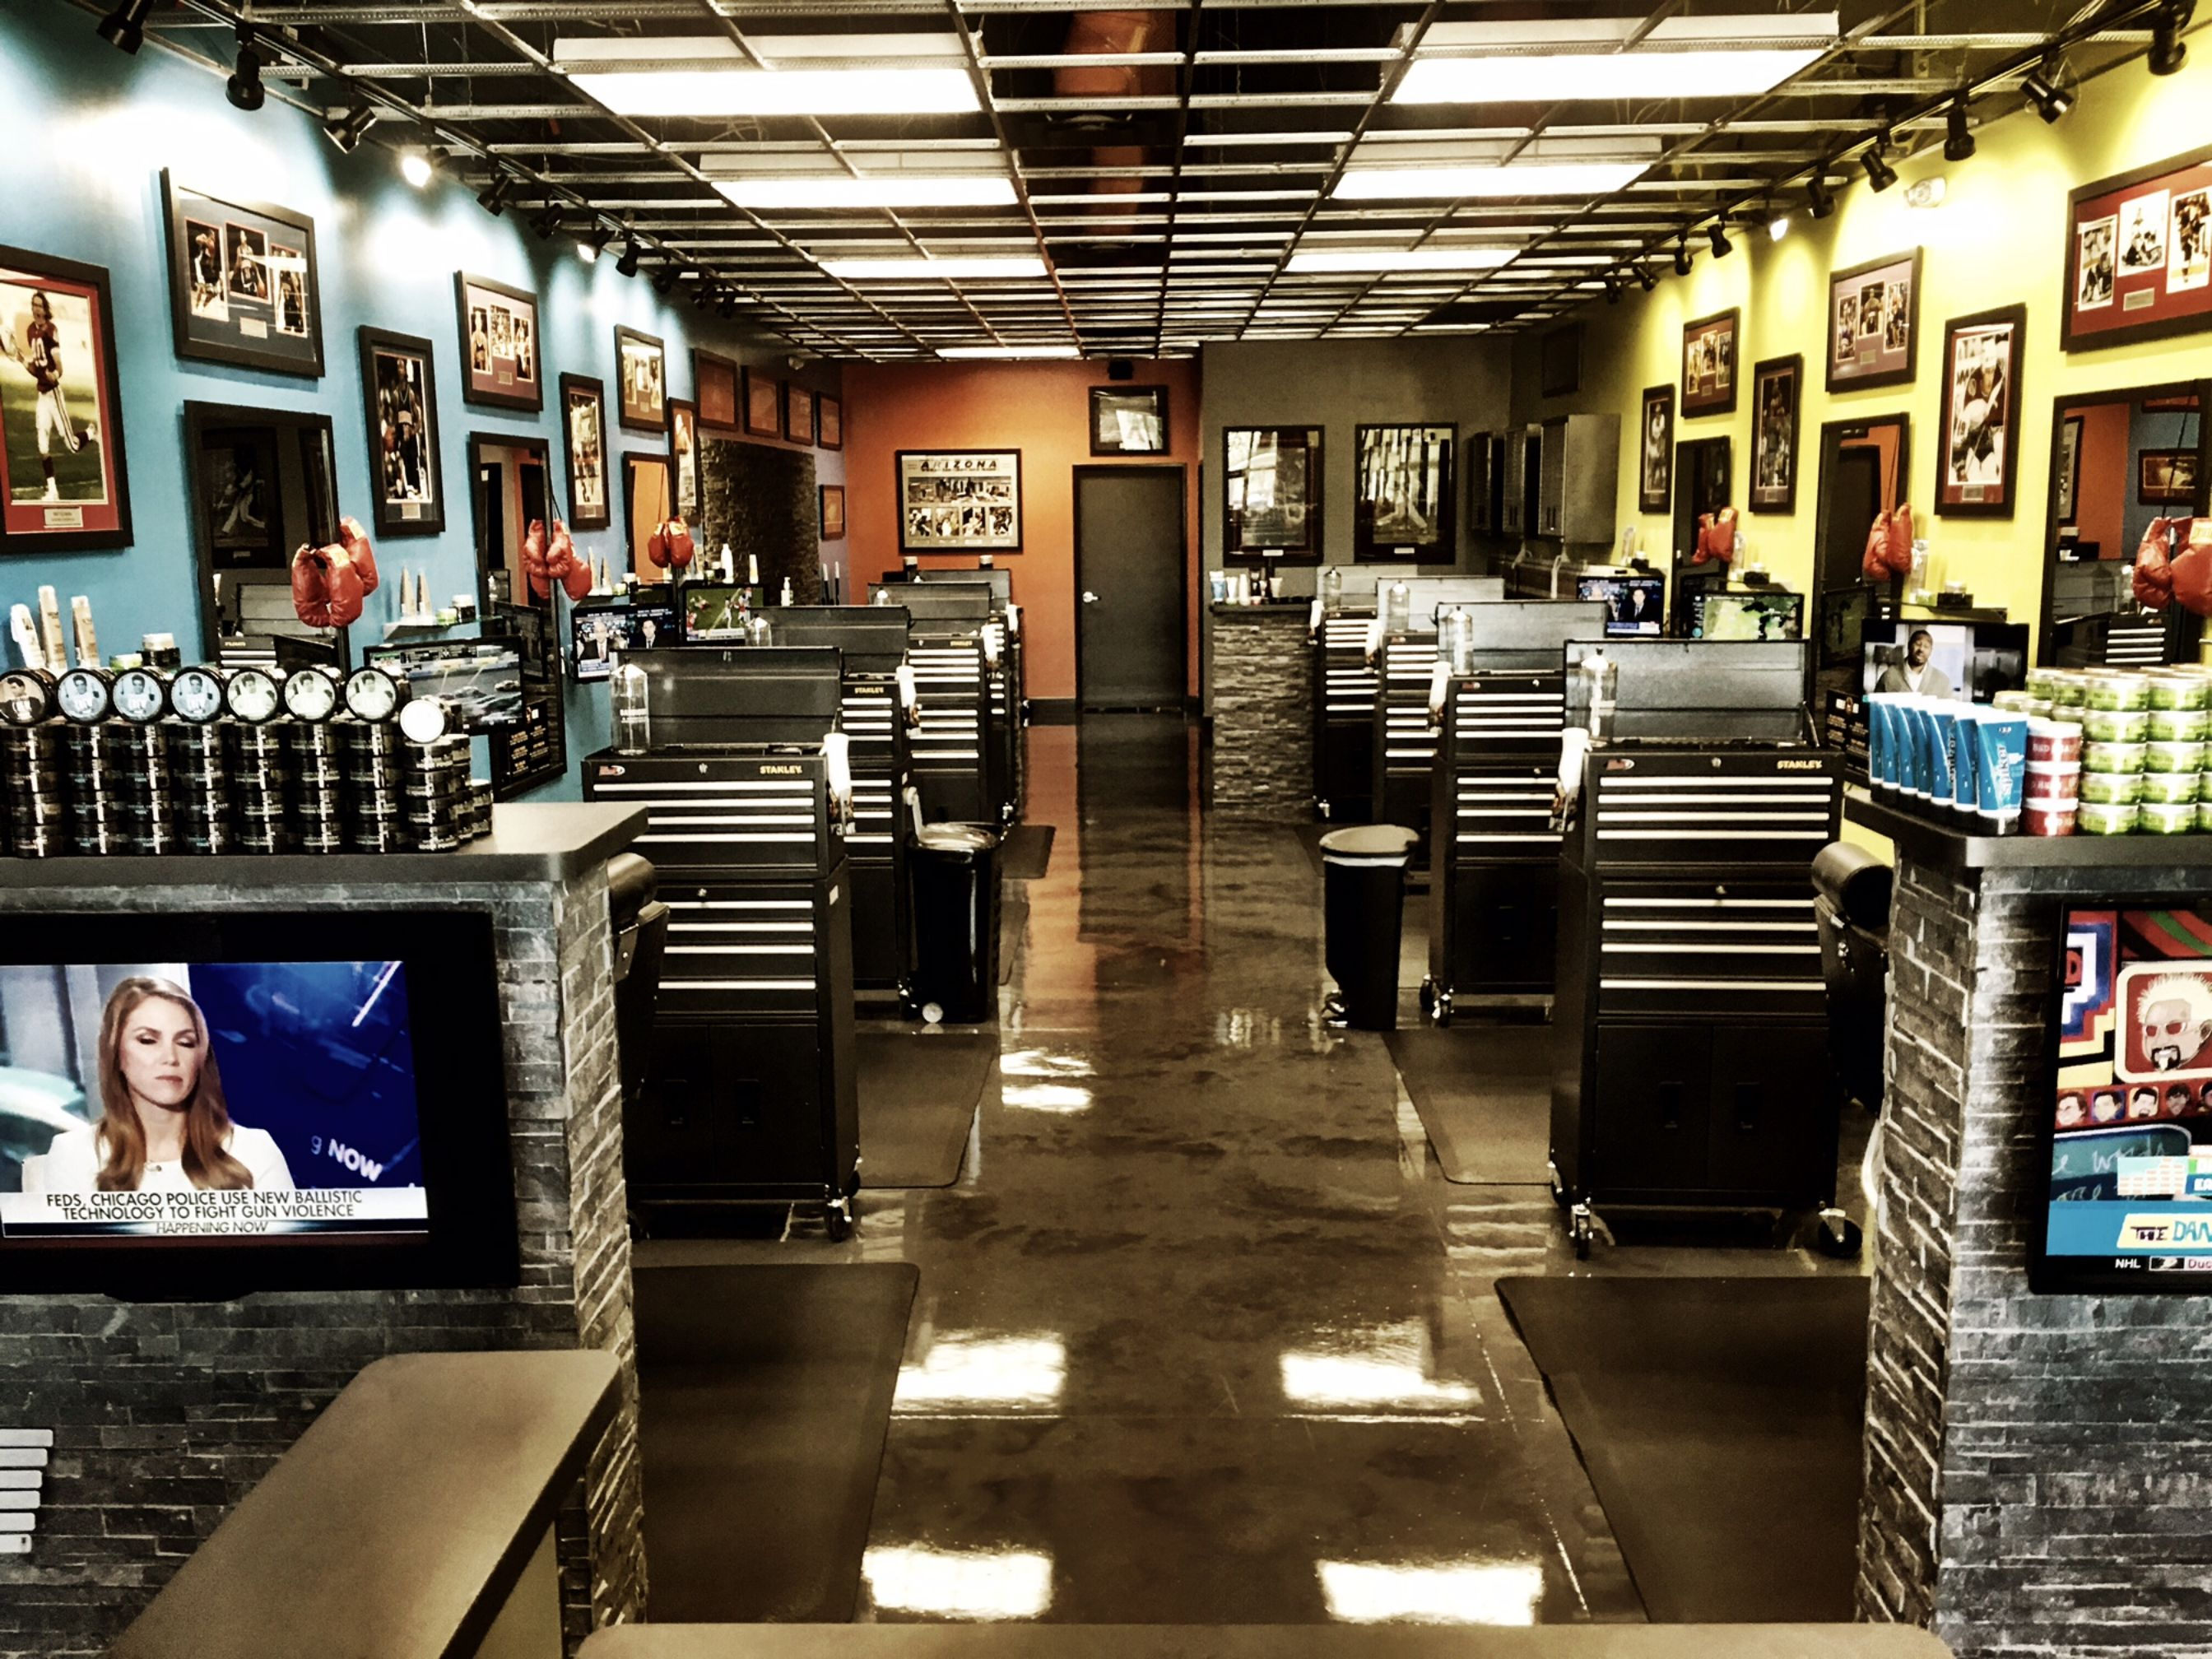 Lady Janes Haircuts For Men Cleaning Up America One Haircut At